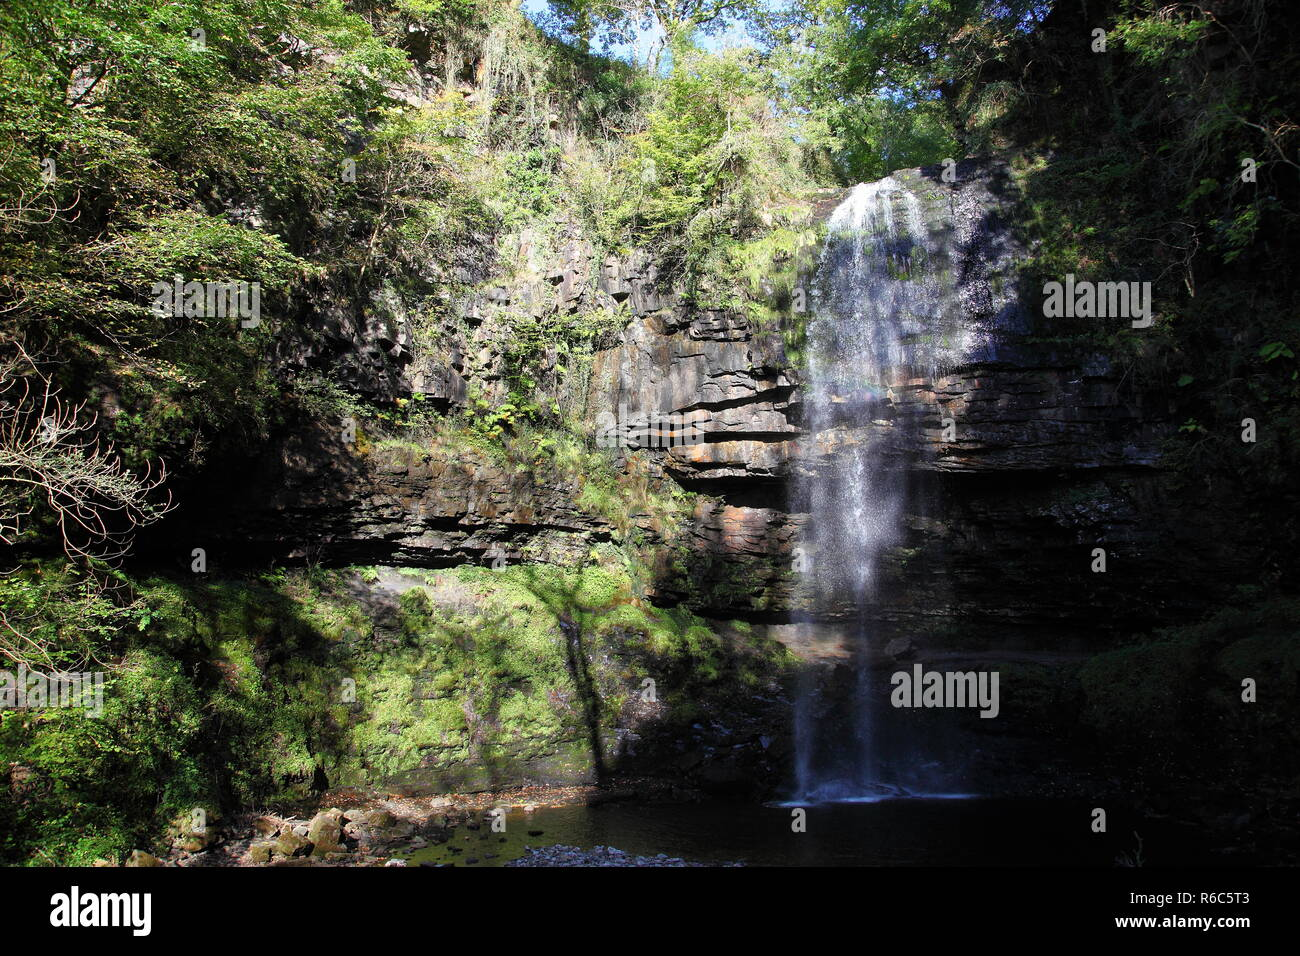 Henrhyd Falls, with a 90ft.fall, these are the tallest waterfalls in South Wales, located in the Brecon Beacons N.P. in Powys - Stock Image